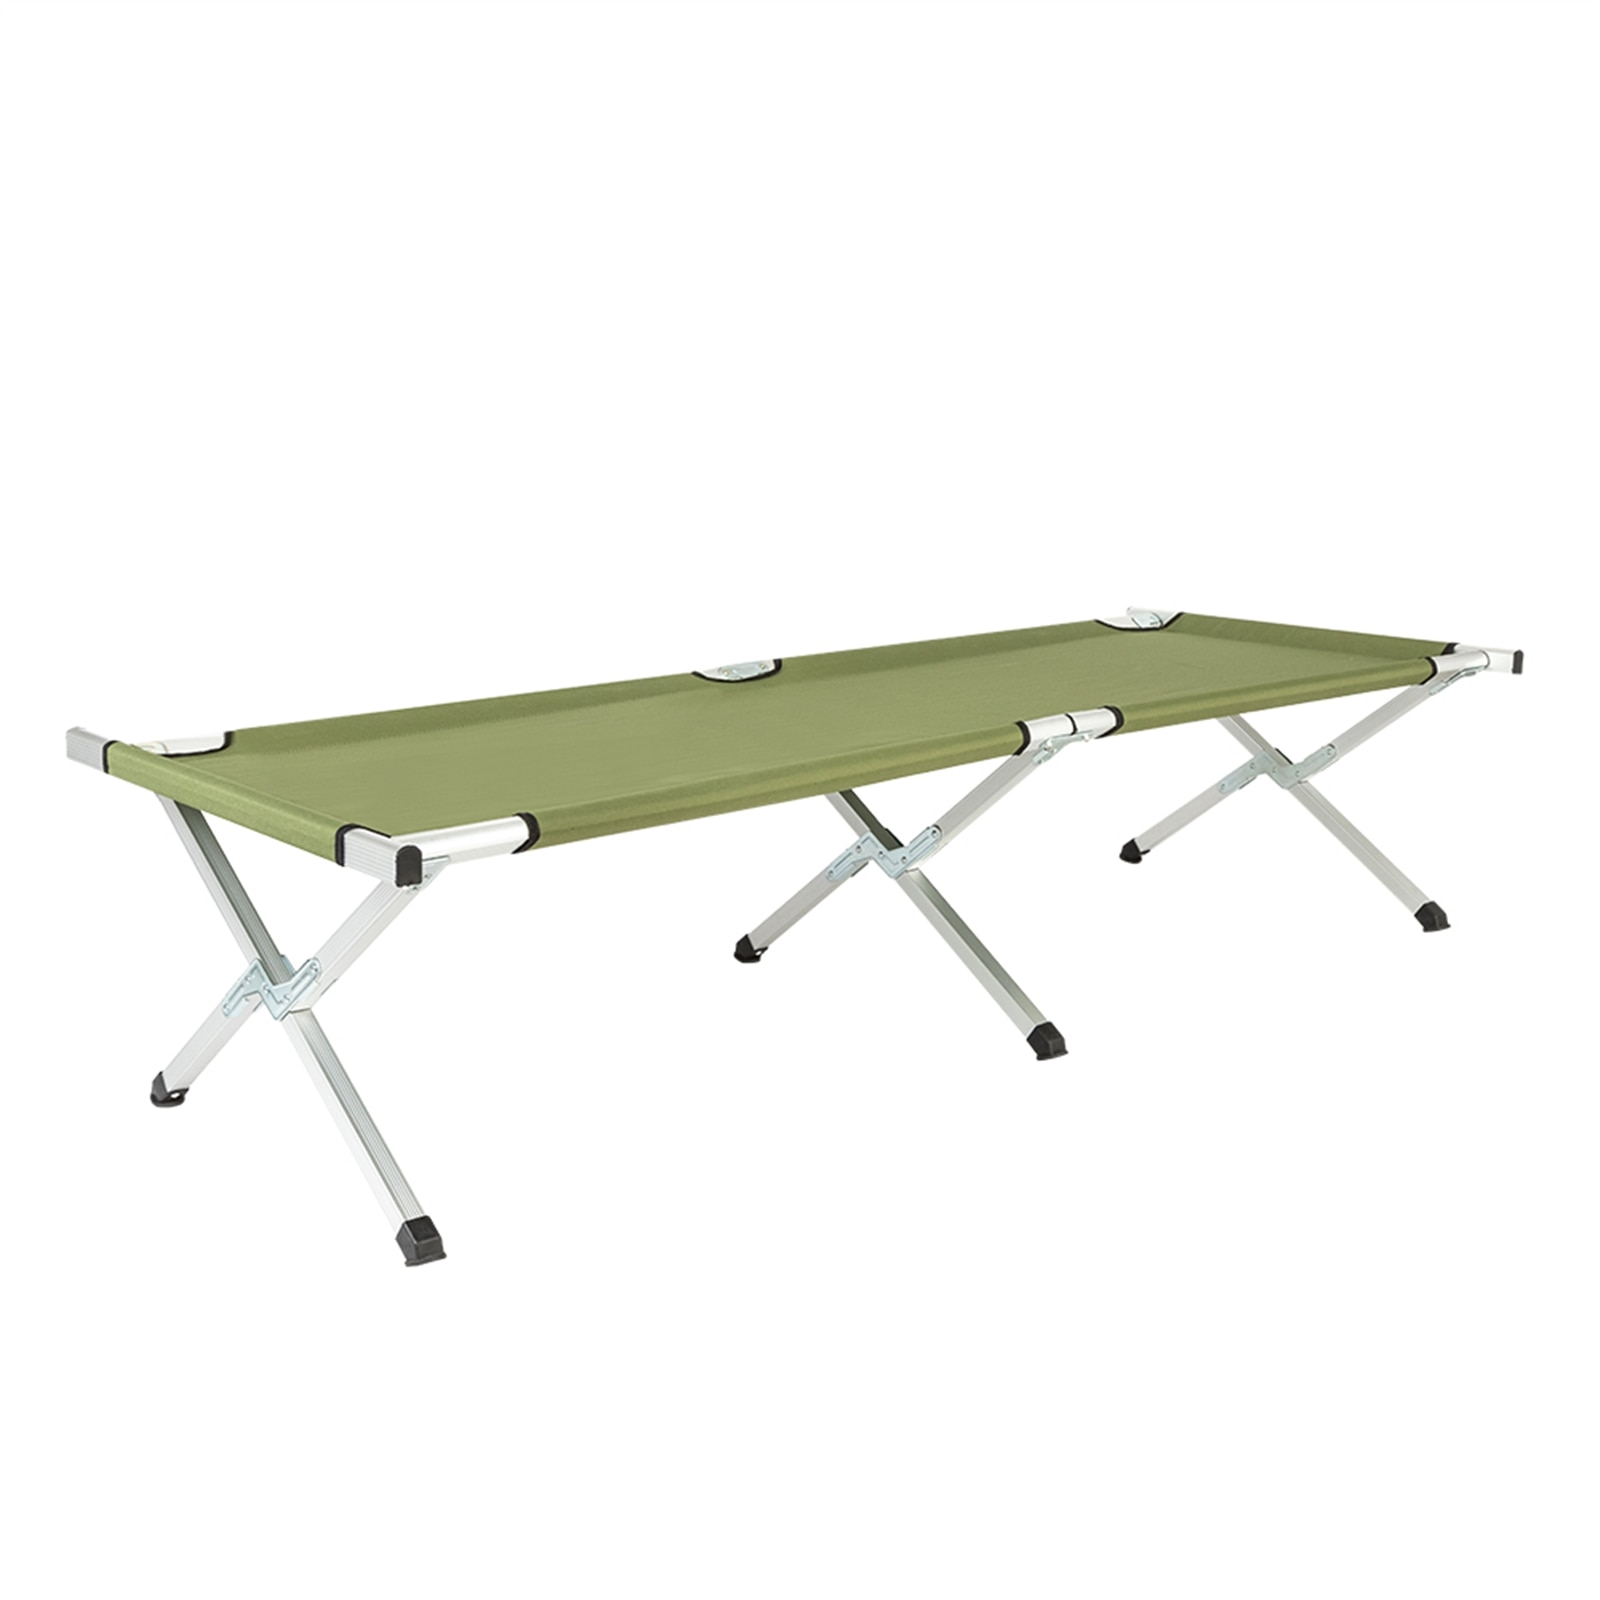 Outdoor Portable Folding Camp Cot Camping Equipment Sleeping Bed Camping Picnic Hiking Ultralight Tent Car Simple Single Bed